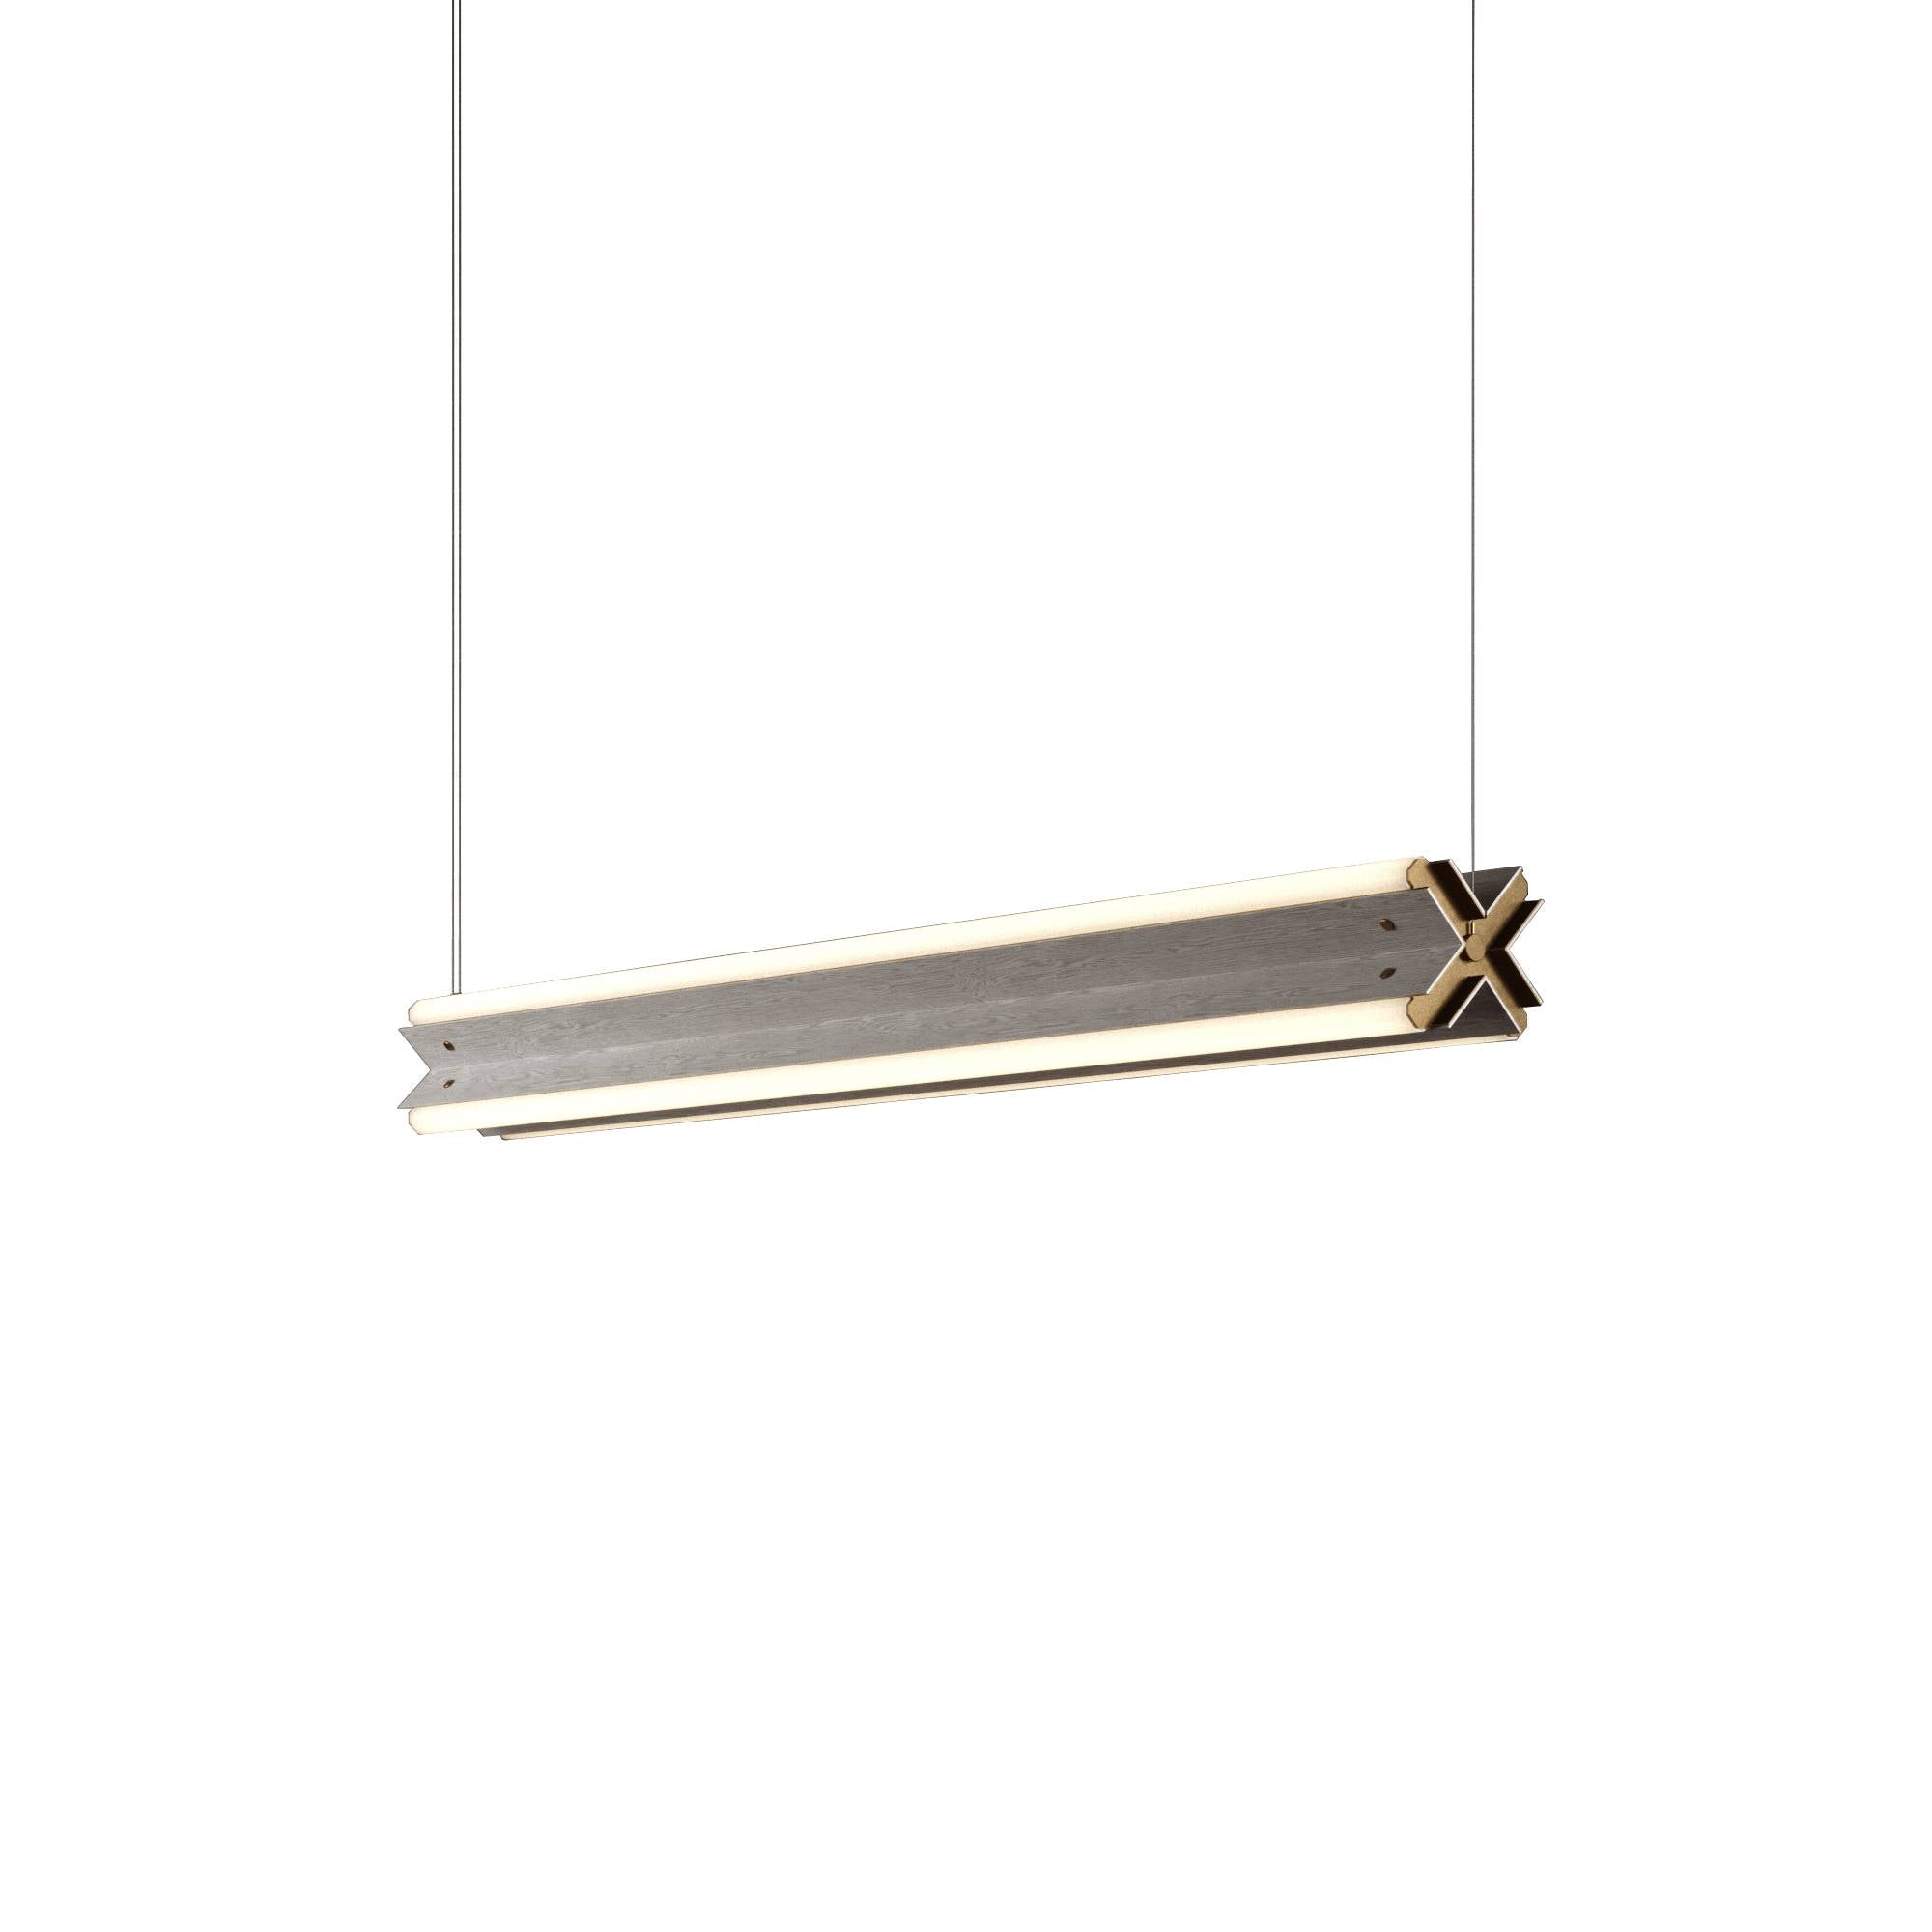 "Axis X Suspension Light: 48"" + Grey Stained Ash + Horizontal"